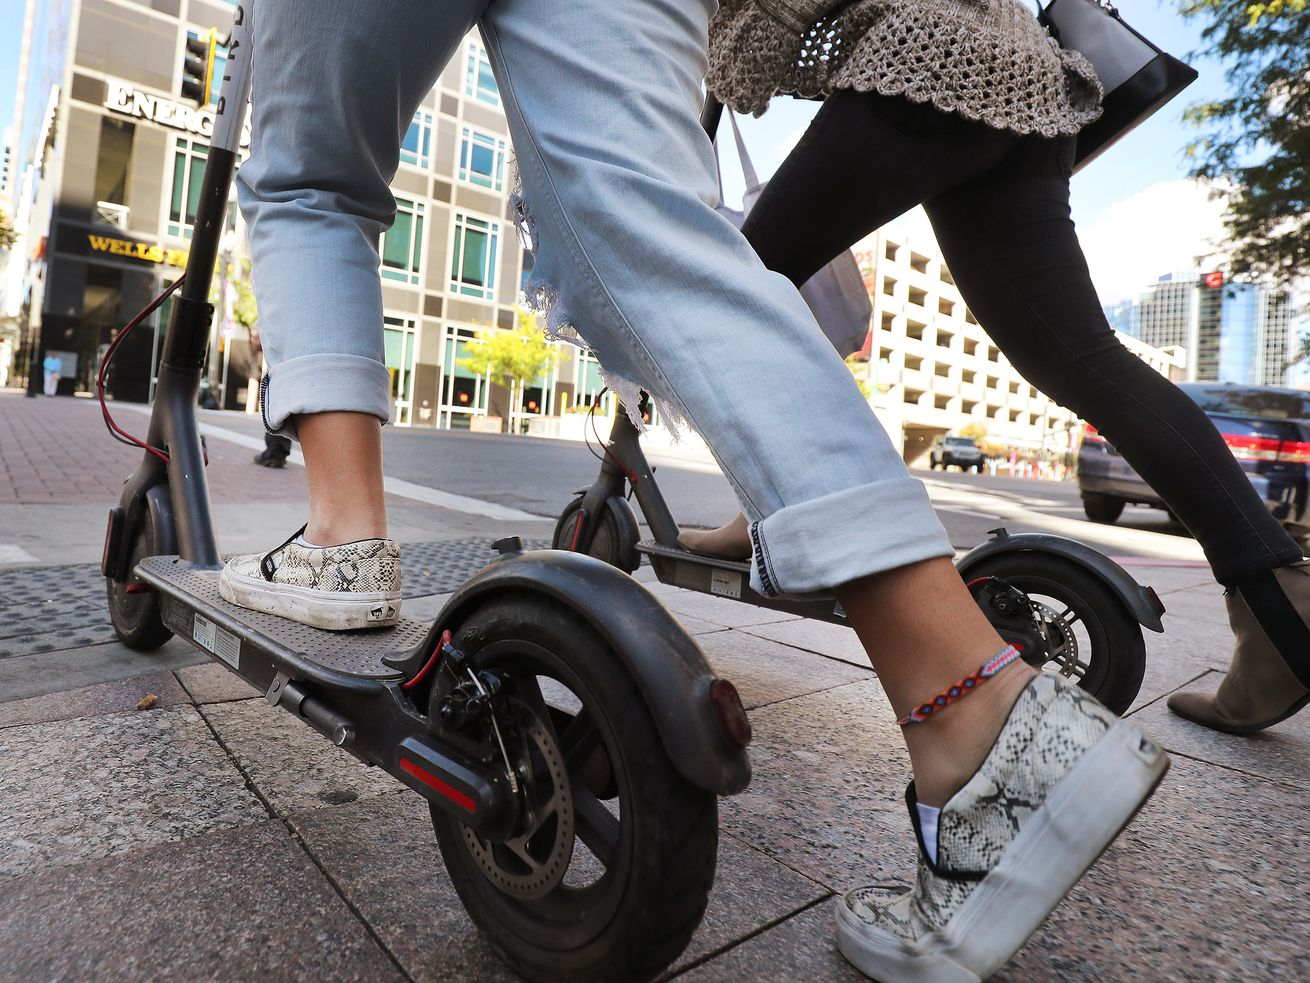 In our opinion: From scooters to homeless shelters, what's happening in Salt Lake City?